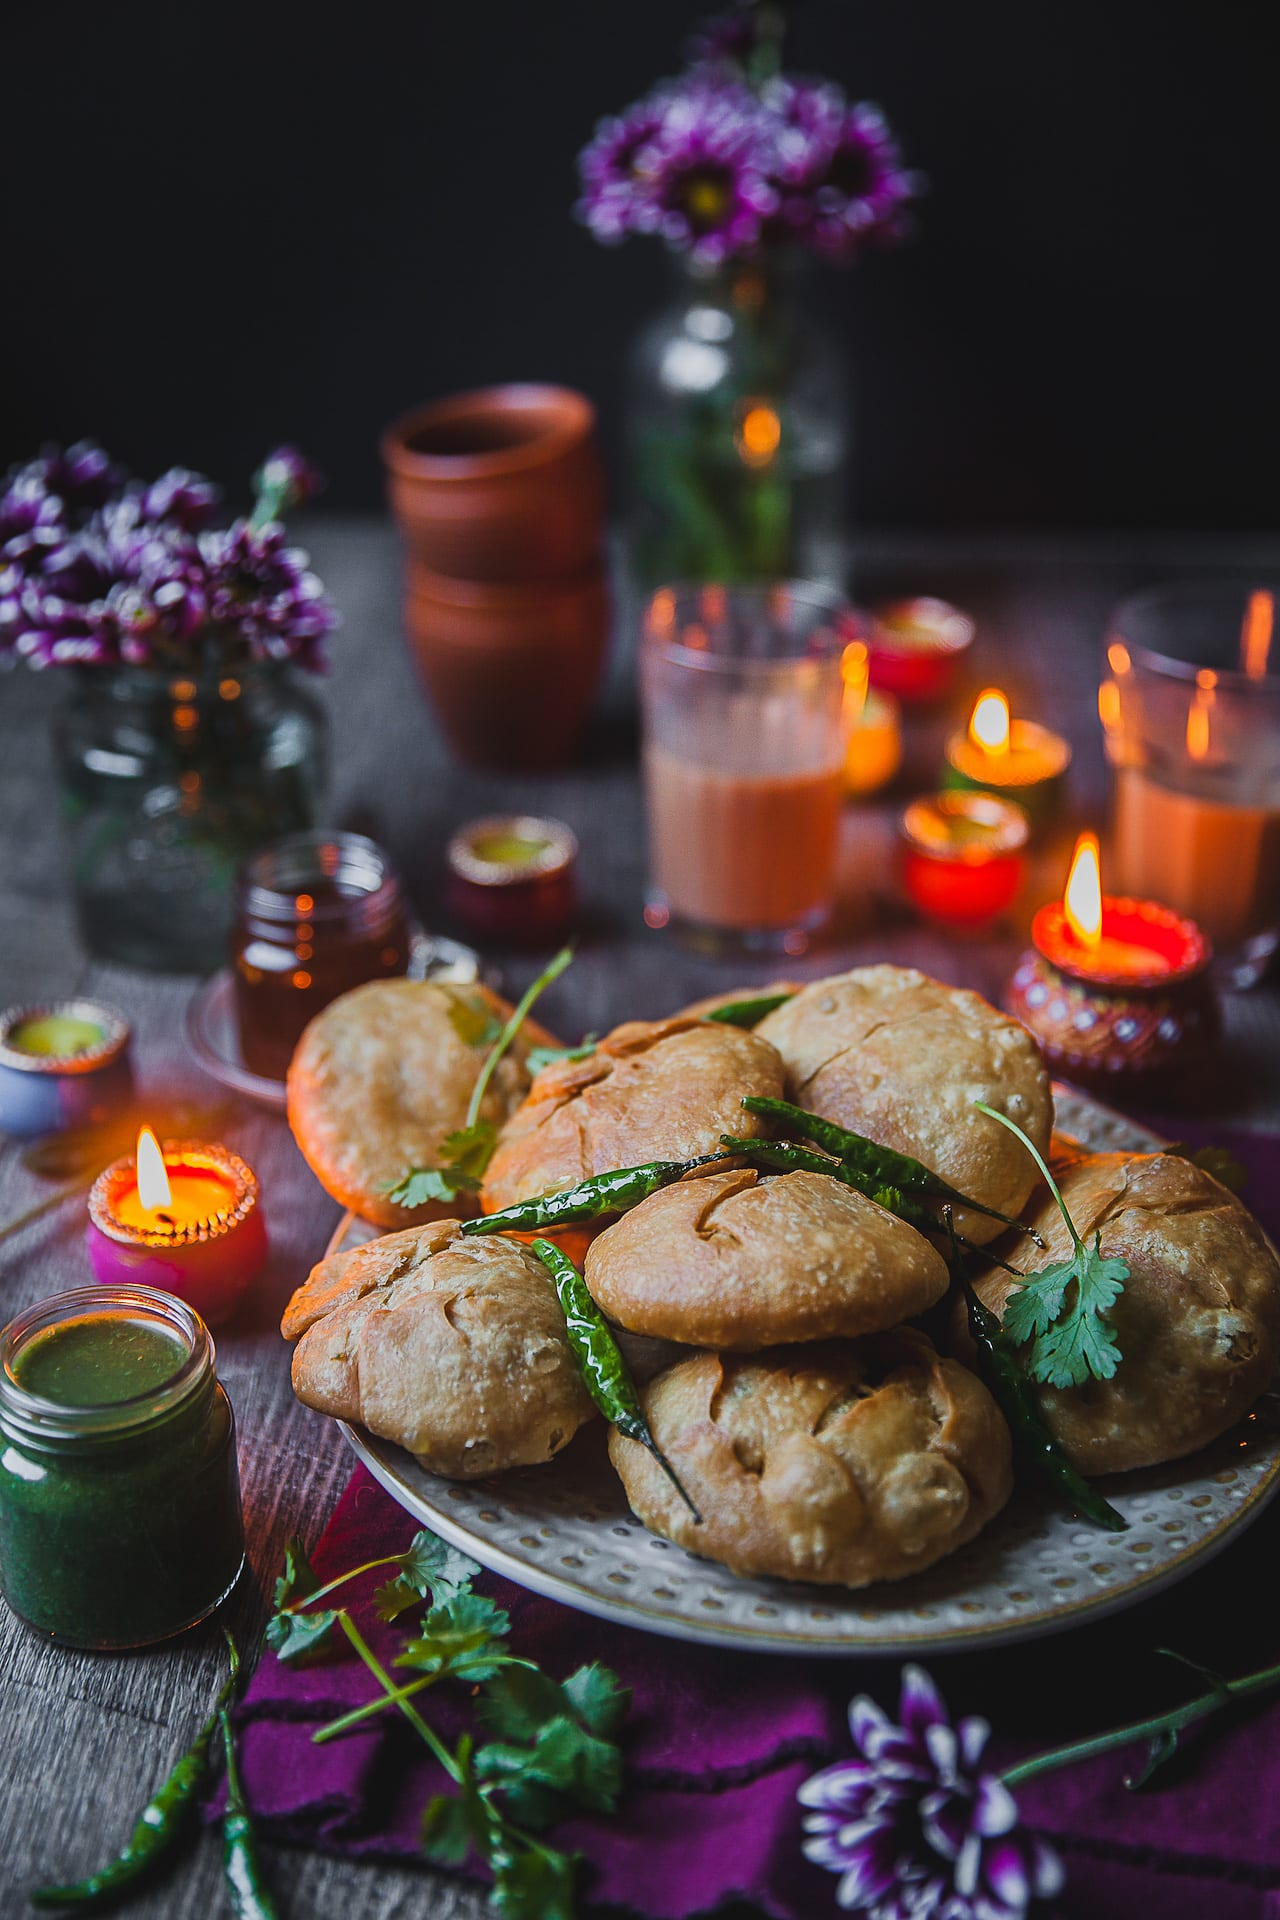 Moong Daal Khasta Kachori (Spiced Mung Bean Stuffed Flaky Dumpling) | Playful Cooking #indian #streetfood #khasta #kachori